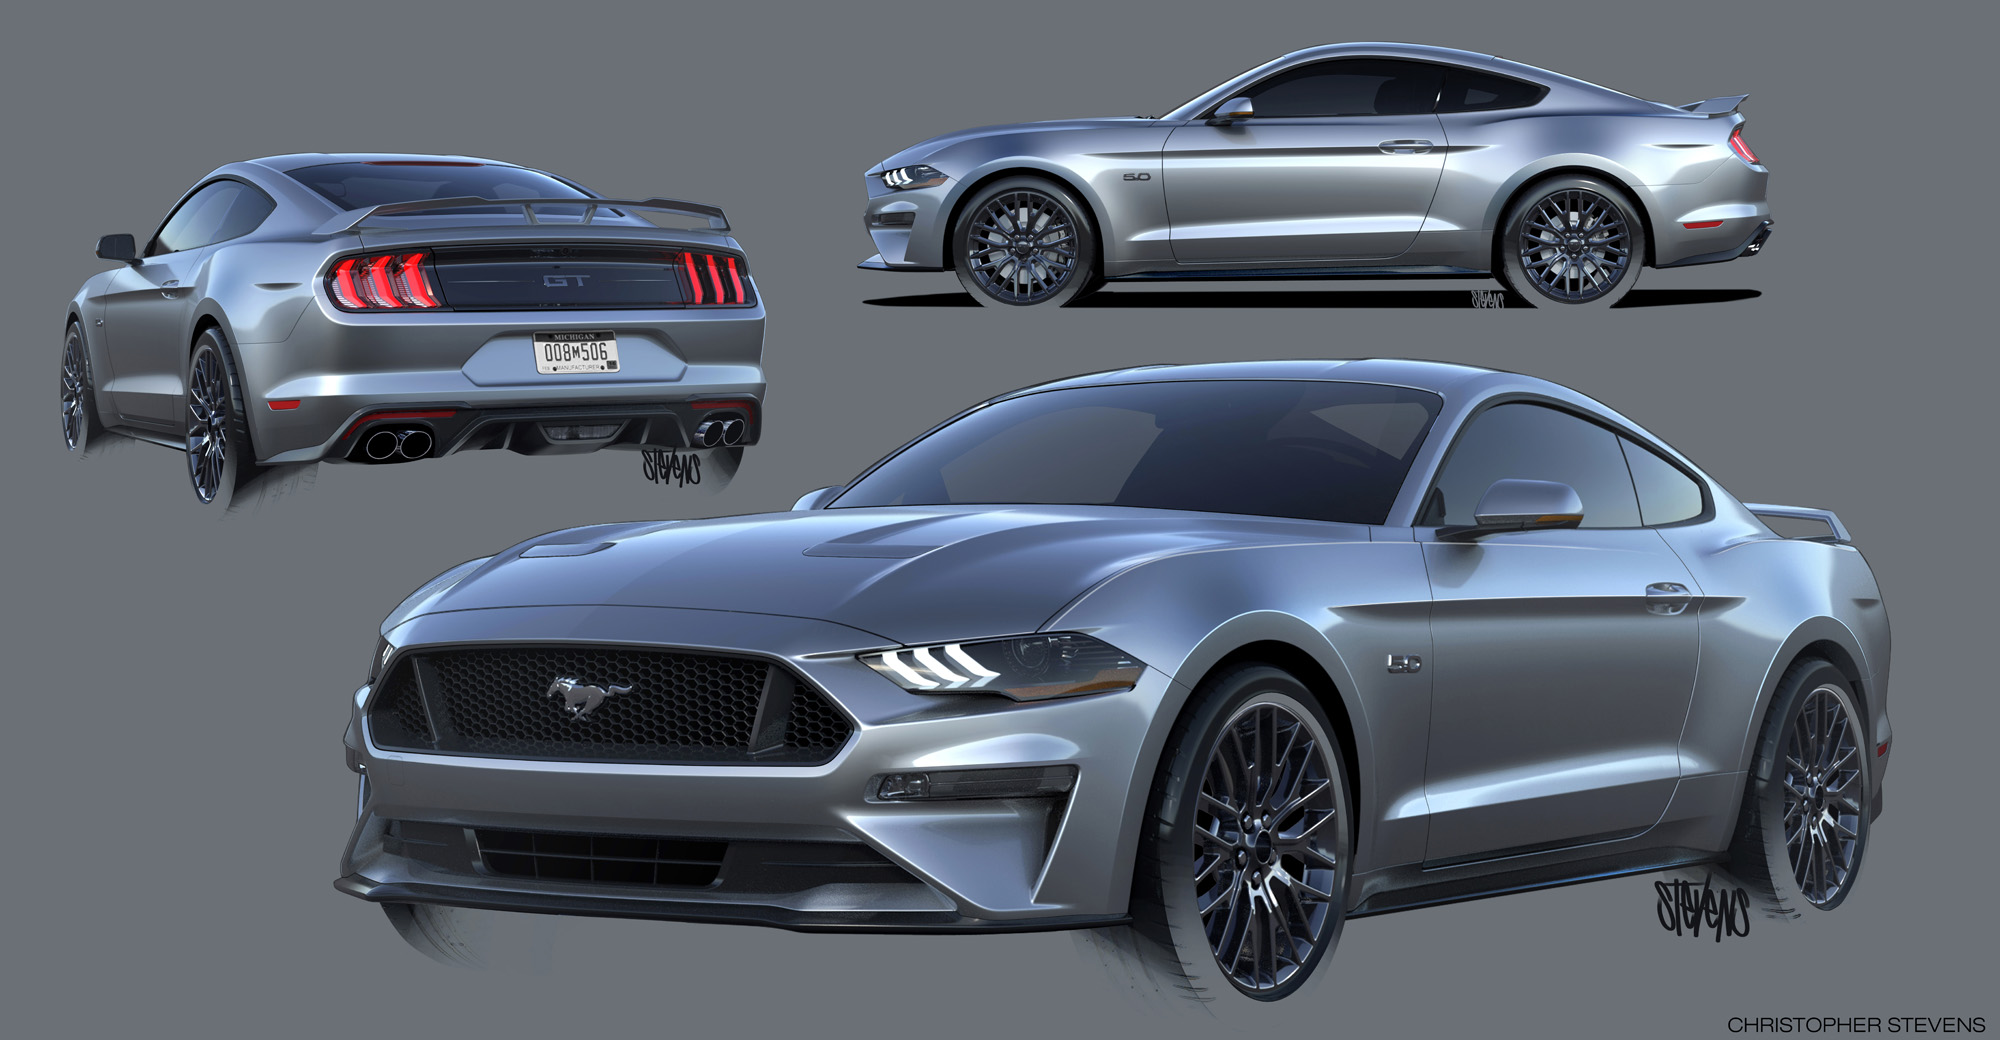 Ford Mustang Fuse Diagram 2018 Ford Mustang Design Sketch Mustangforums